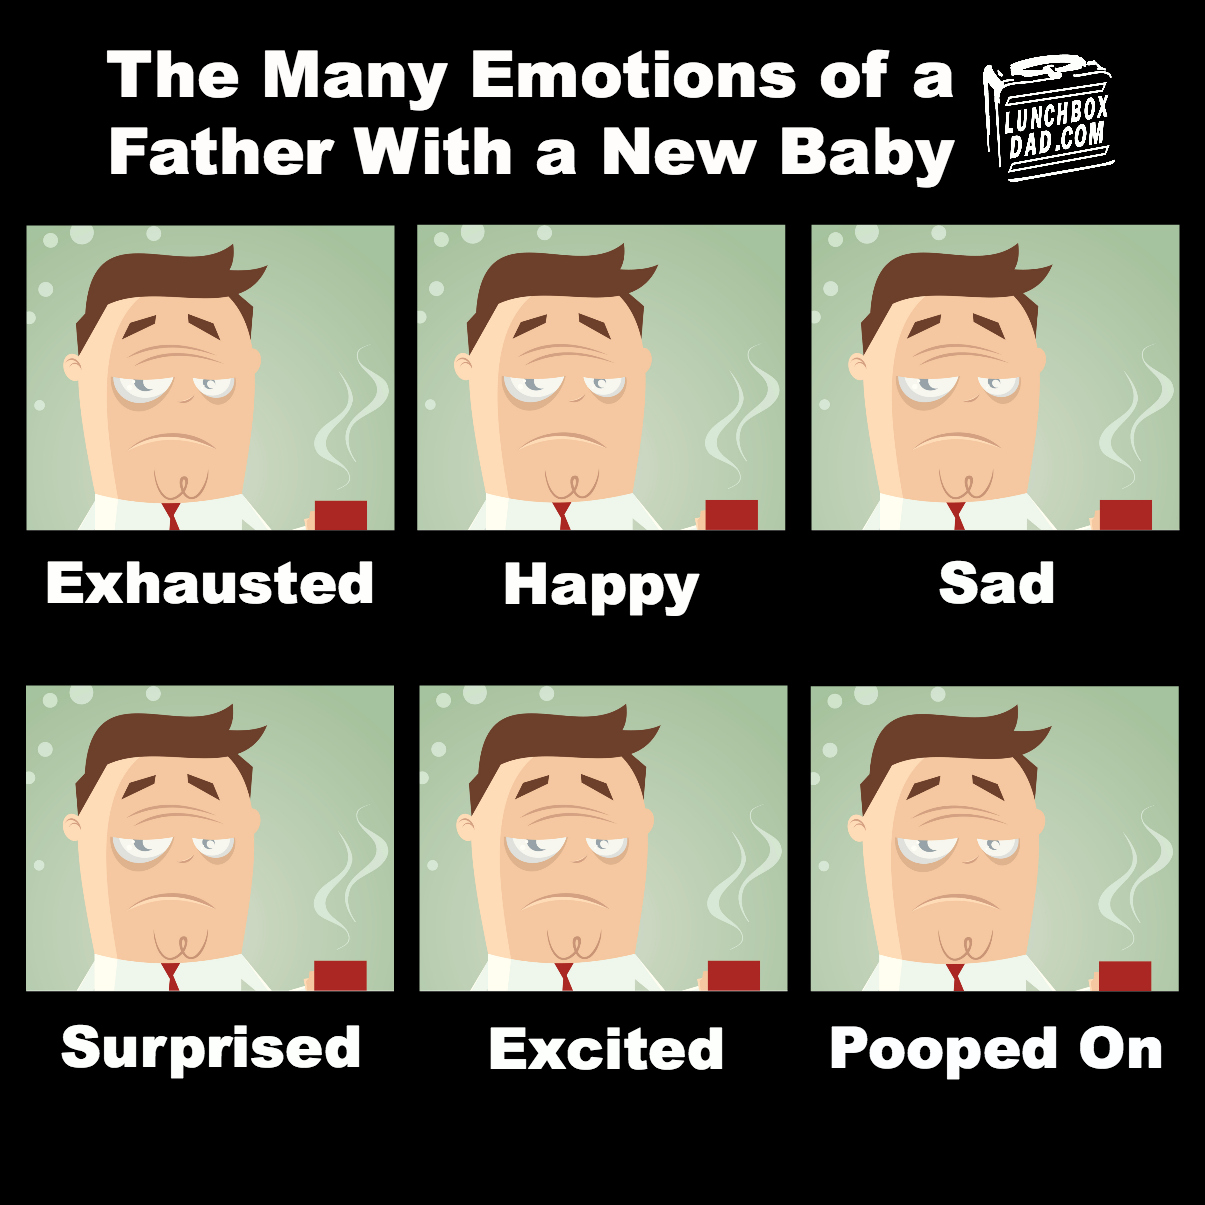 The Many Emotions of a Father with a New Baby